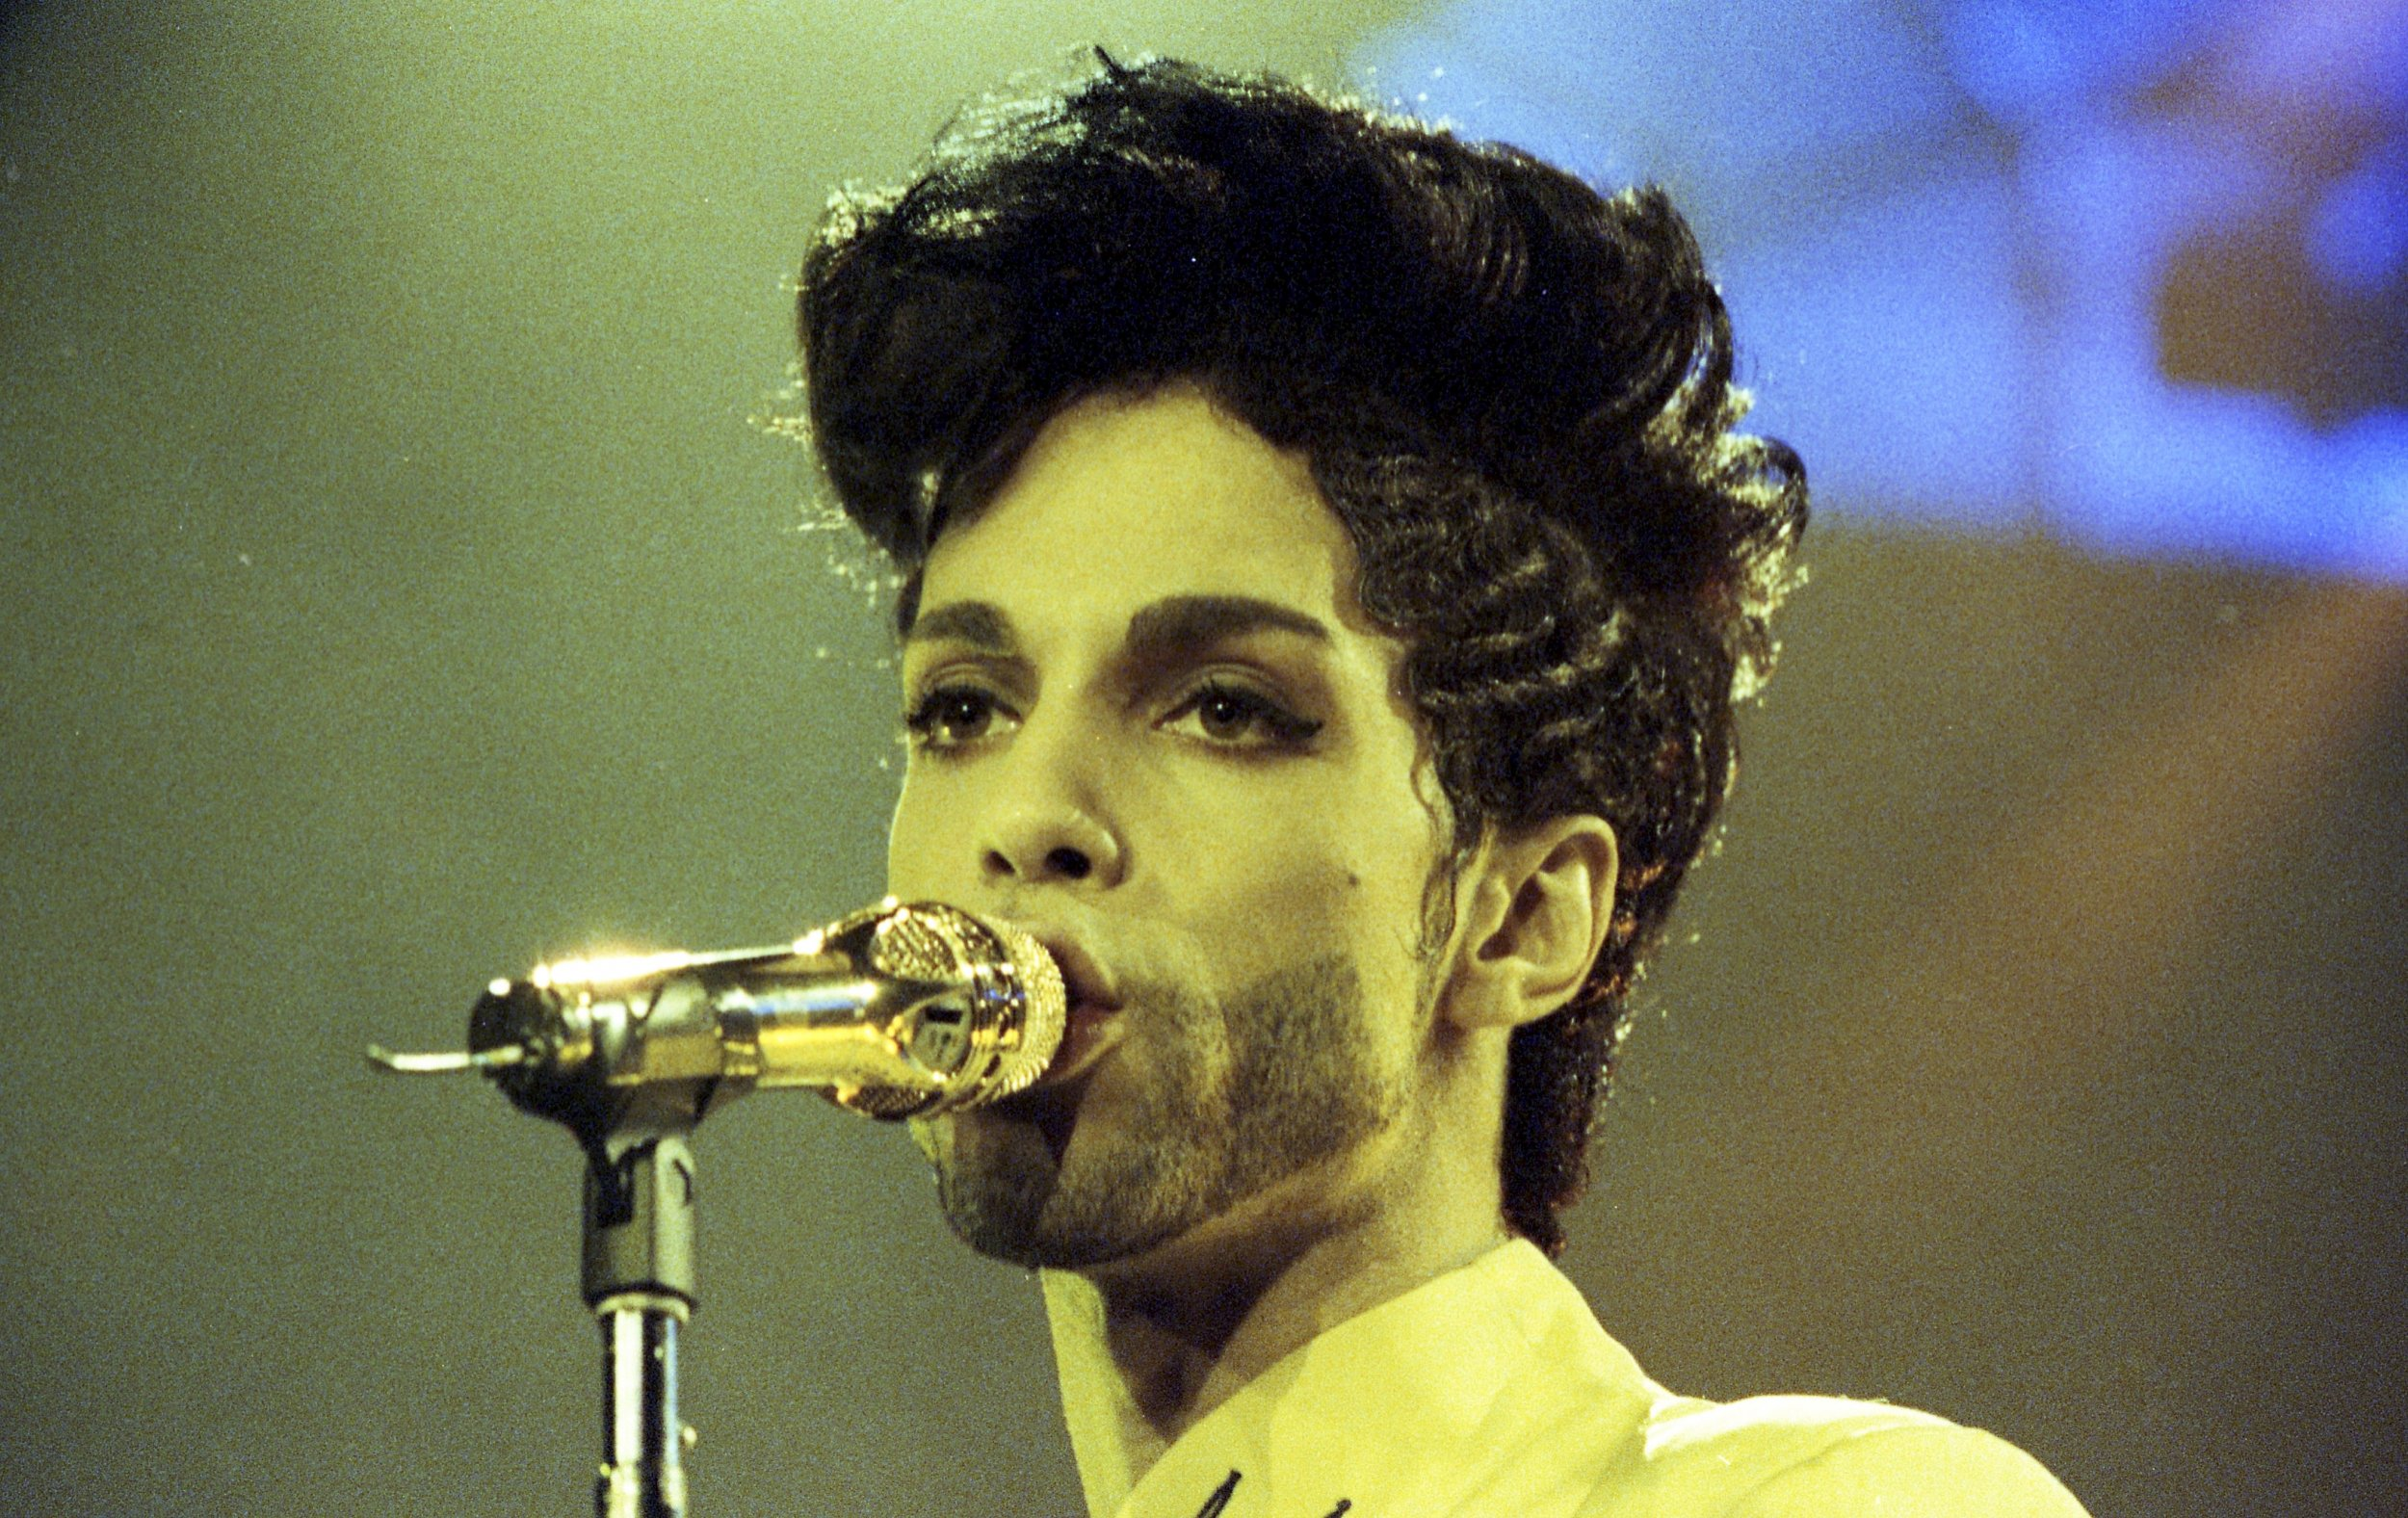 Prince's 'Gett Off' and the 24-Year Mystery of an Iconic Hip